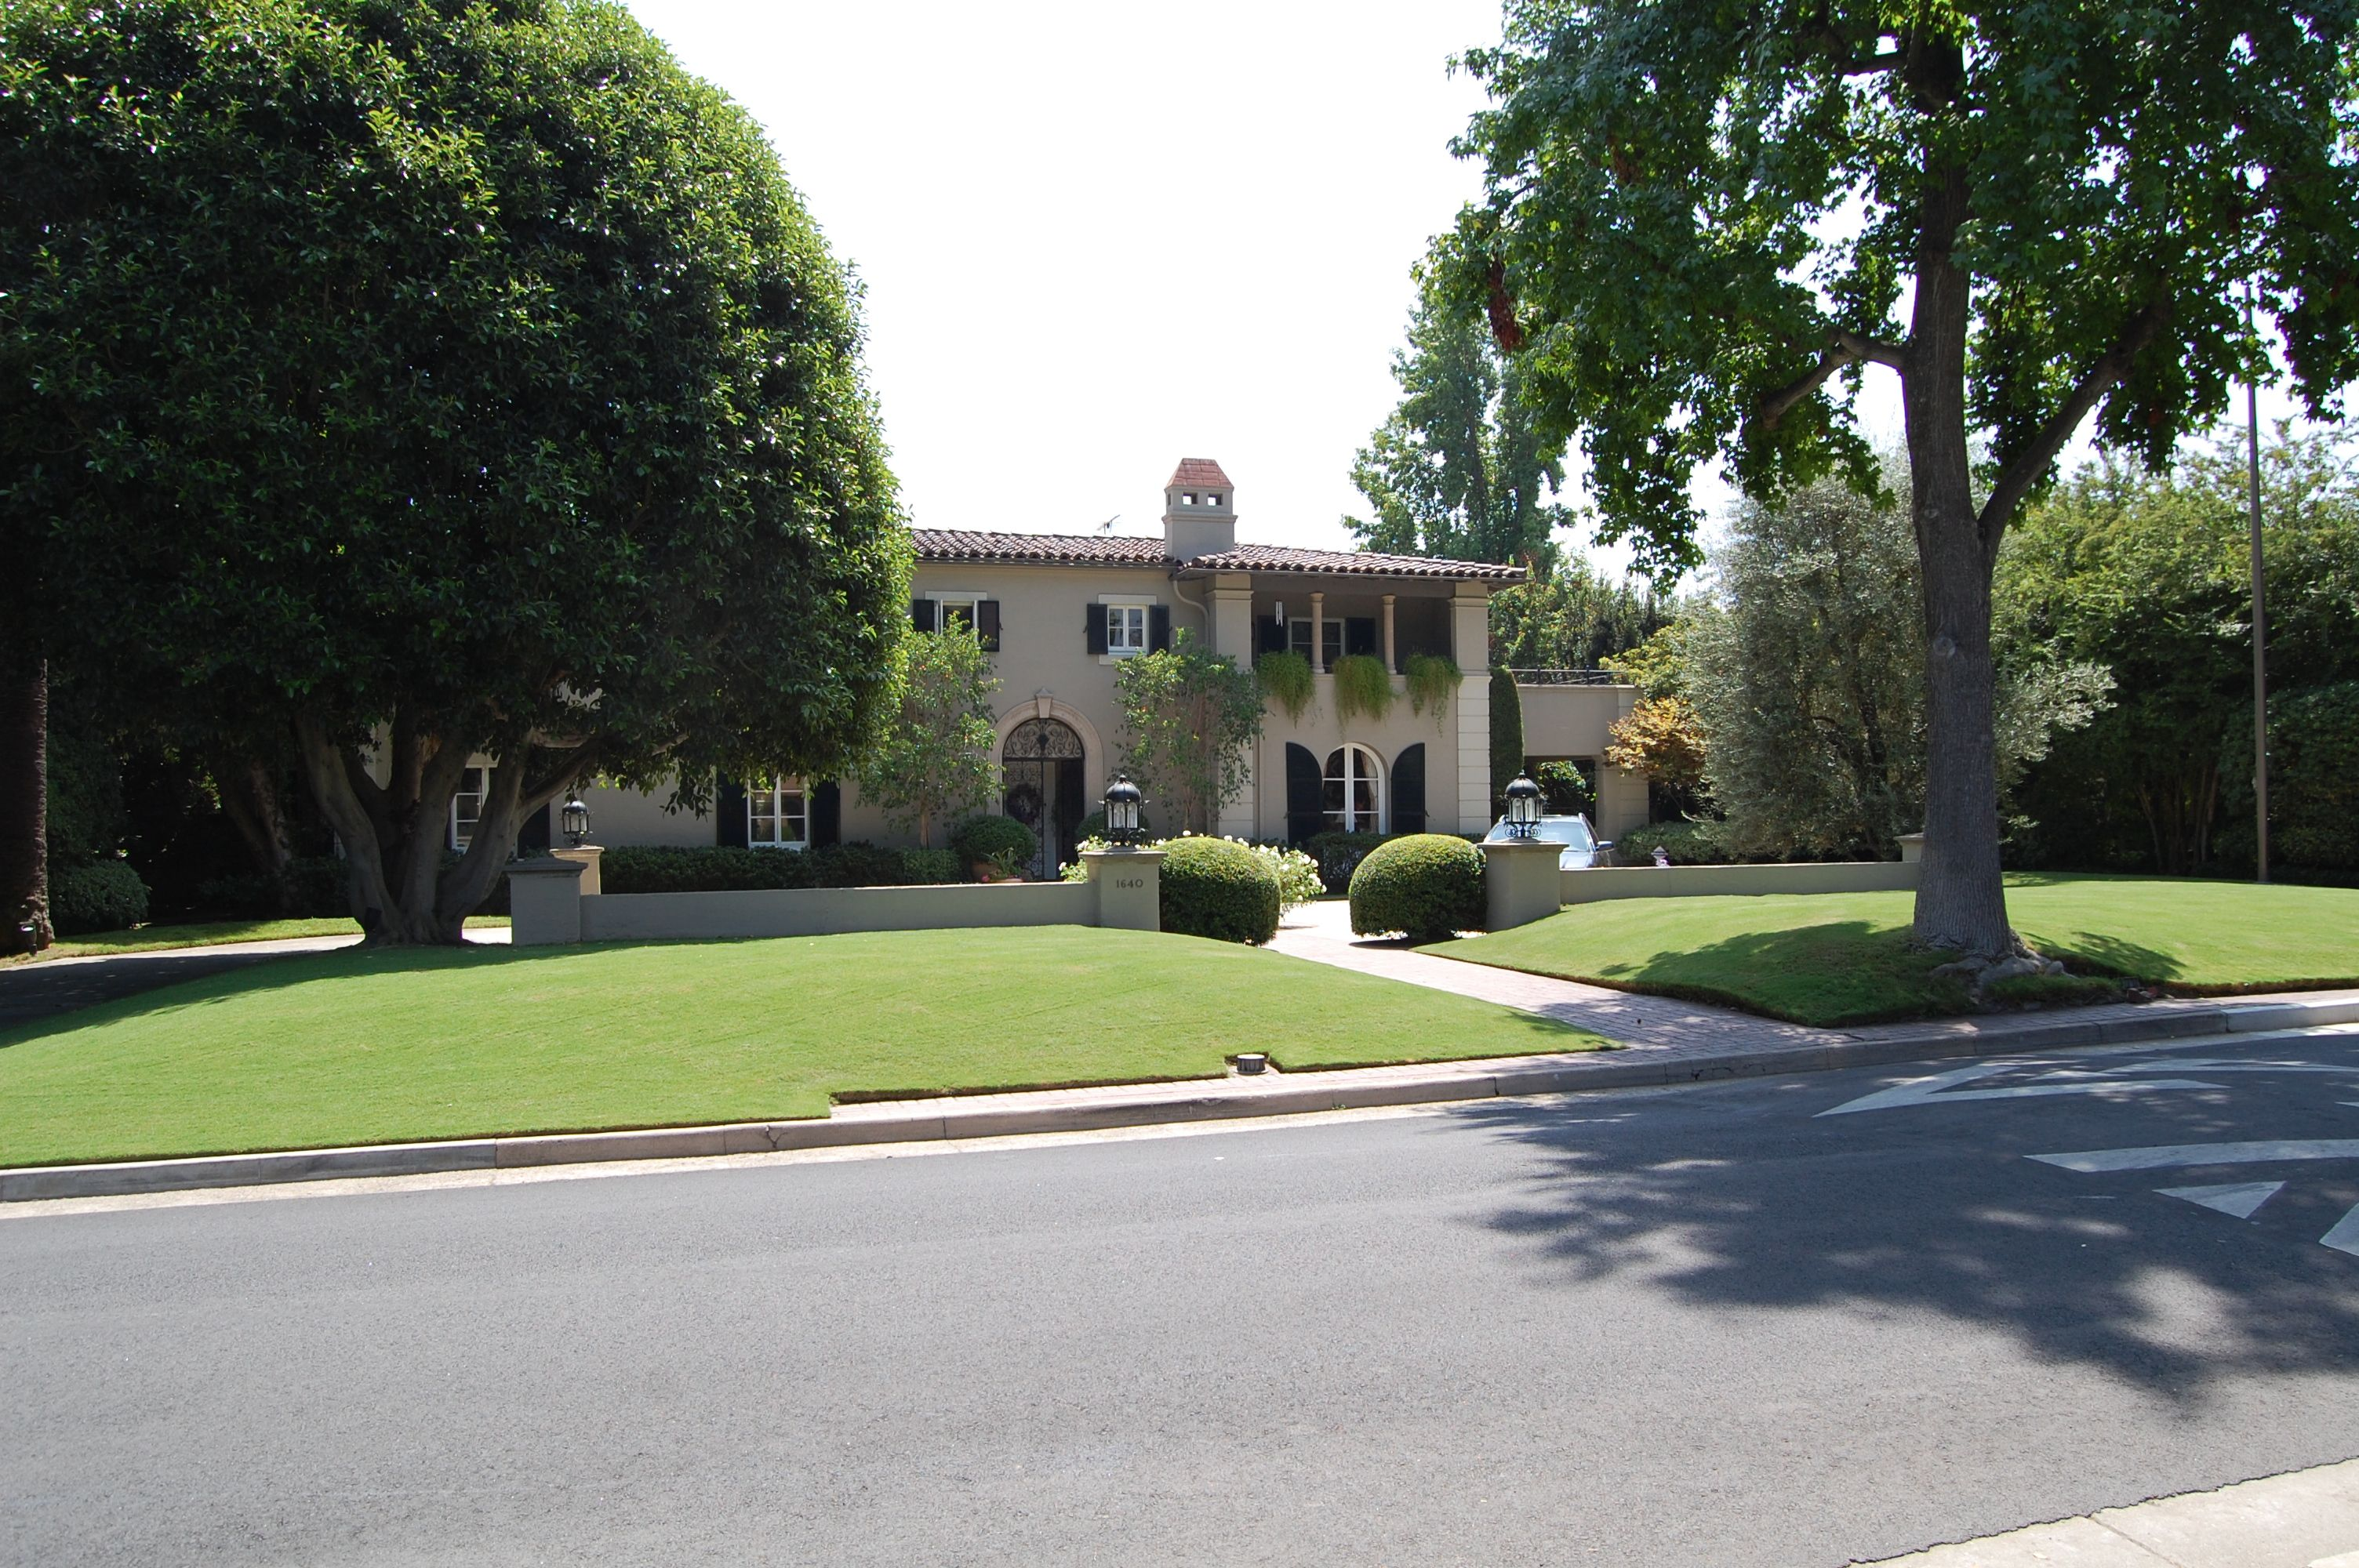 Pasadena, CA House from Brothers & Sisters TV Show.